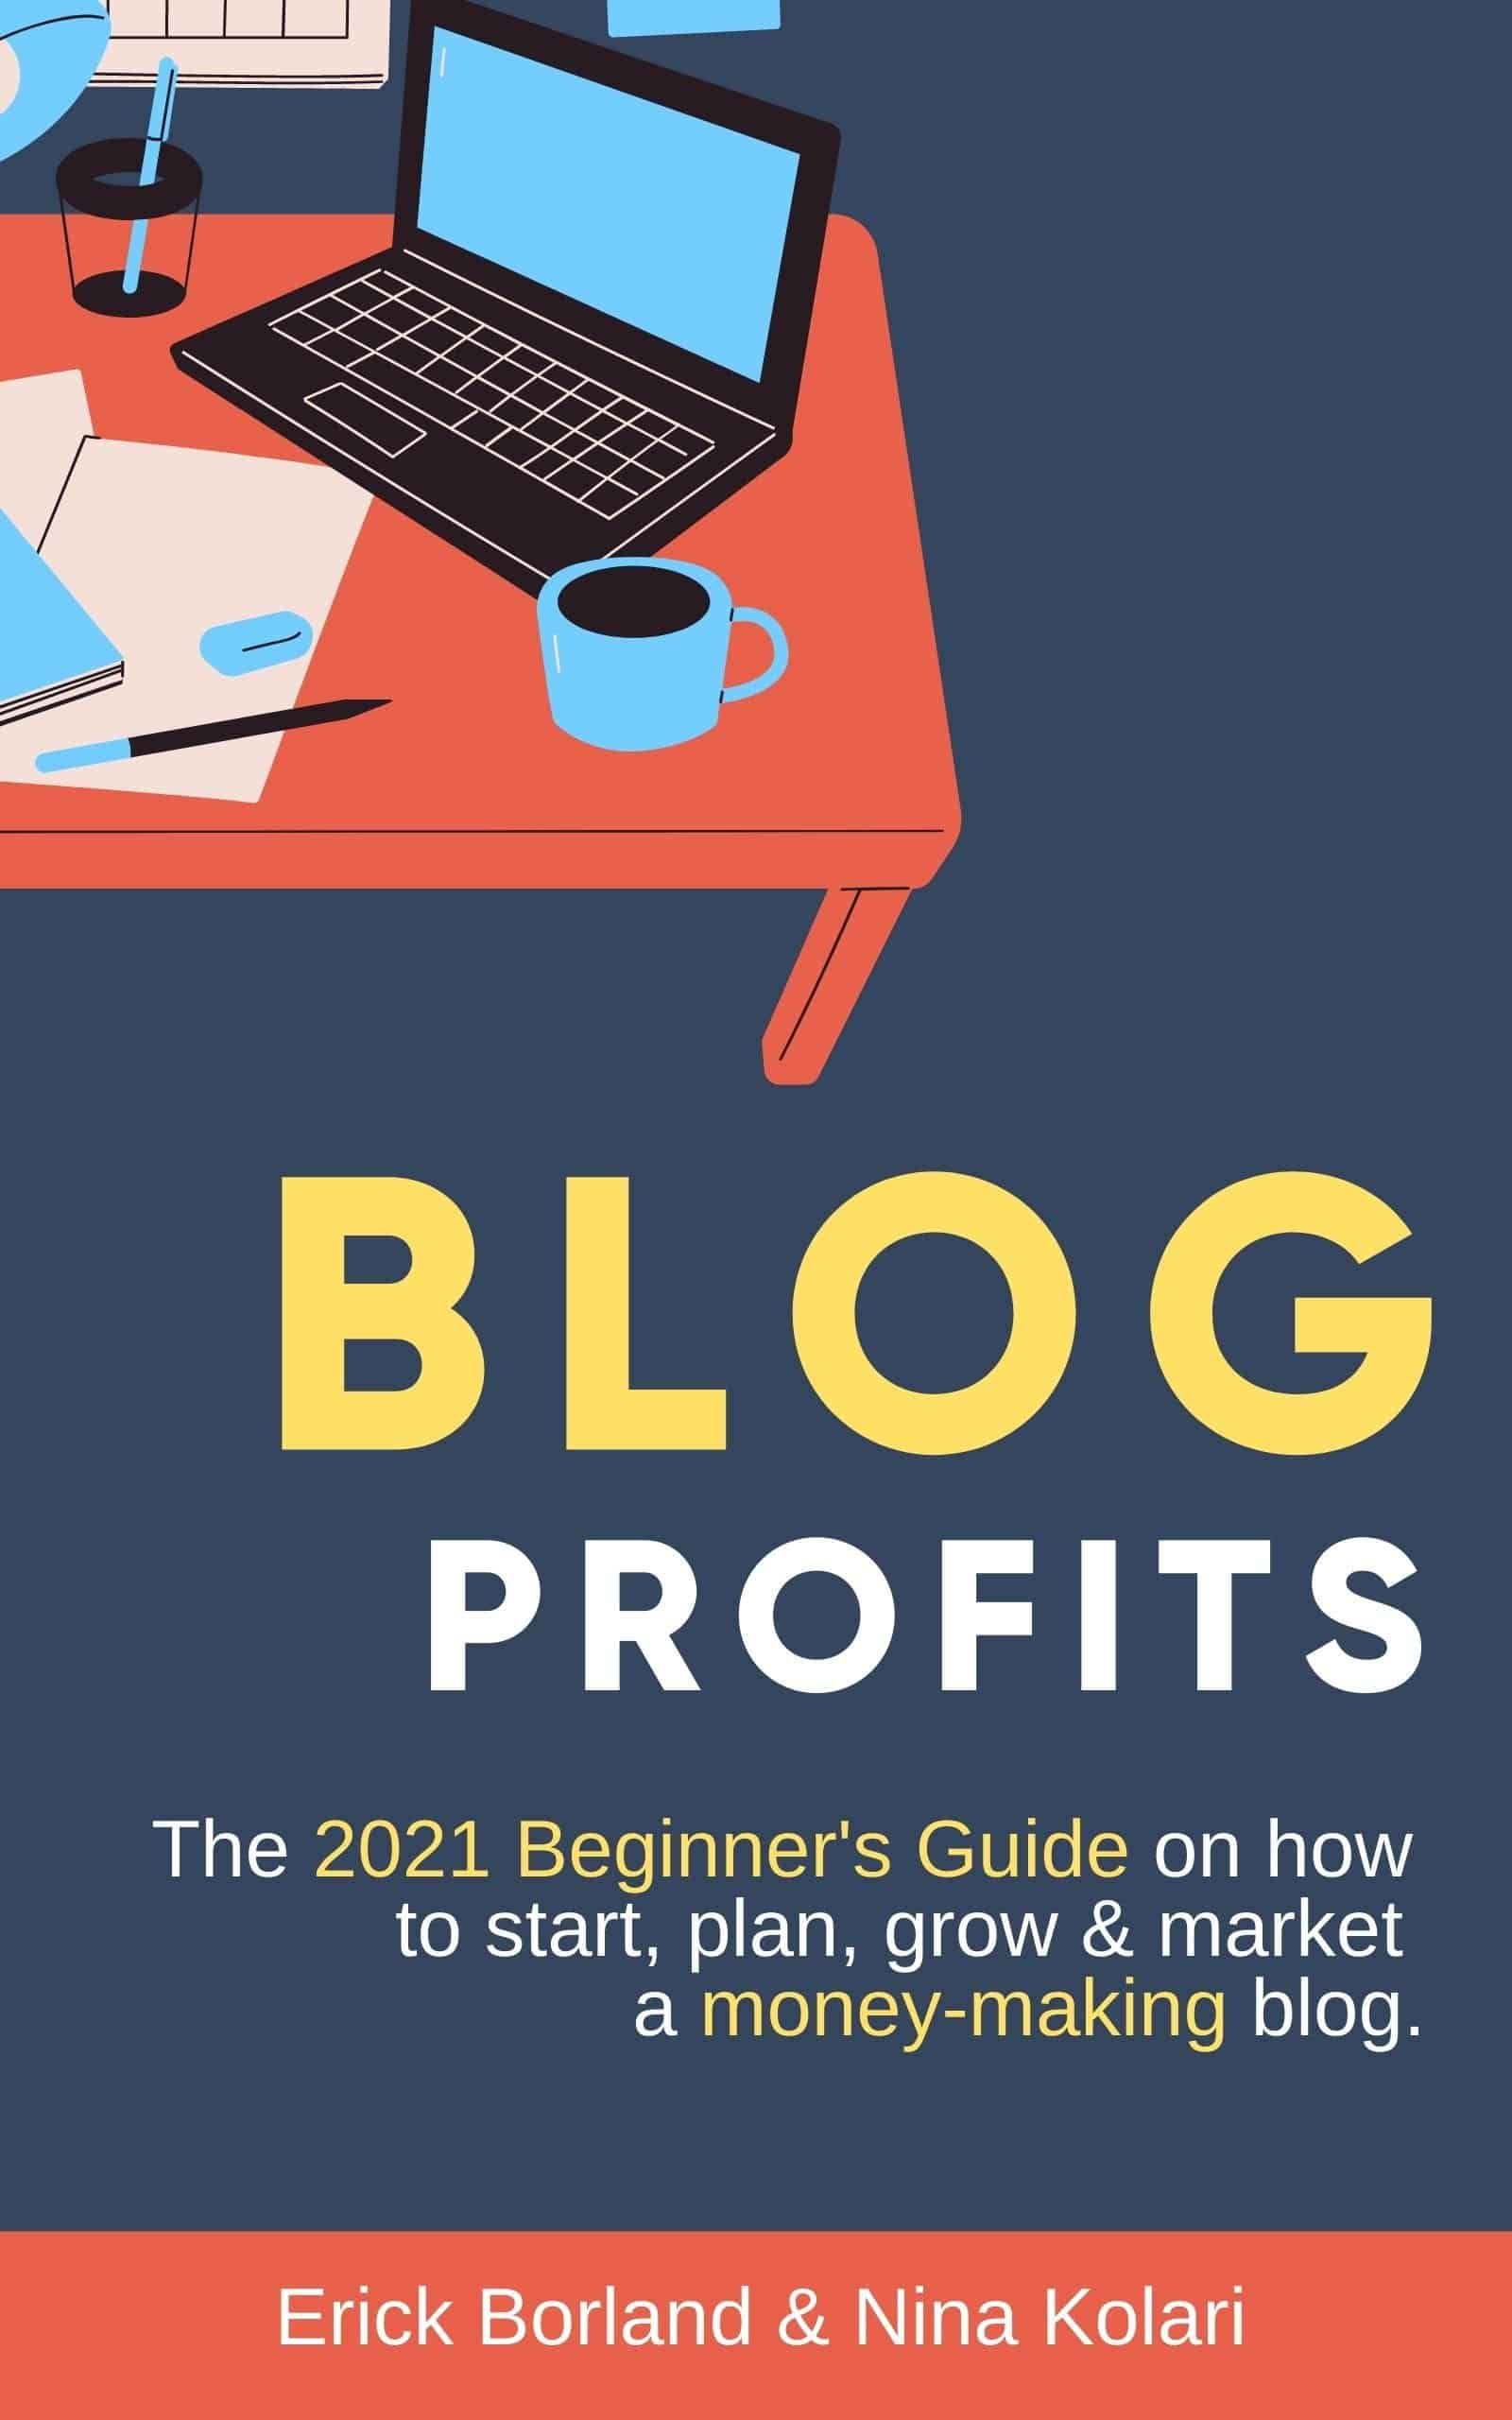 Earn more and live better with Blog Profits.